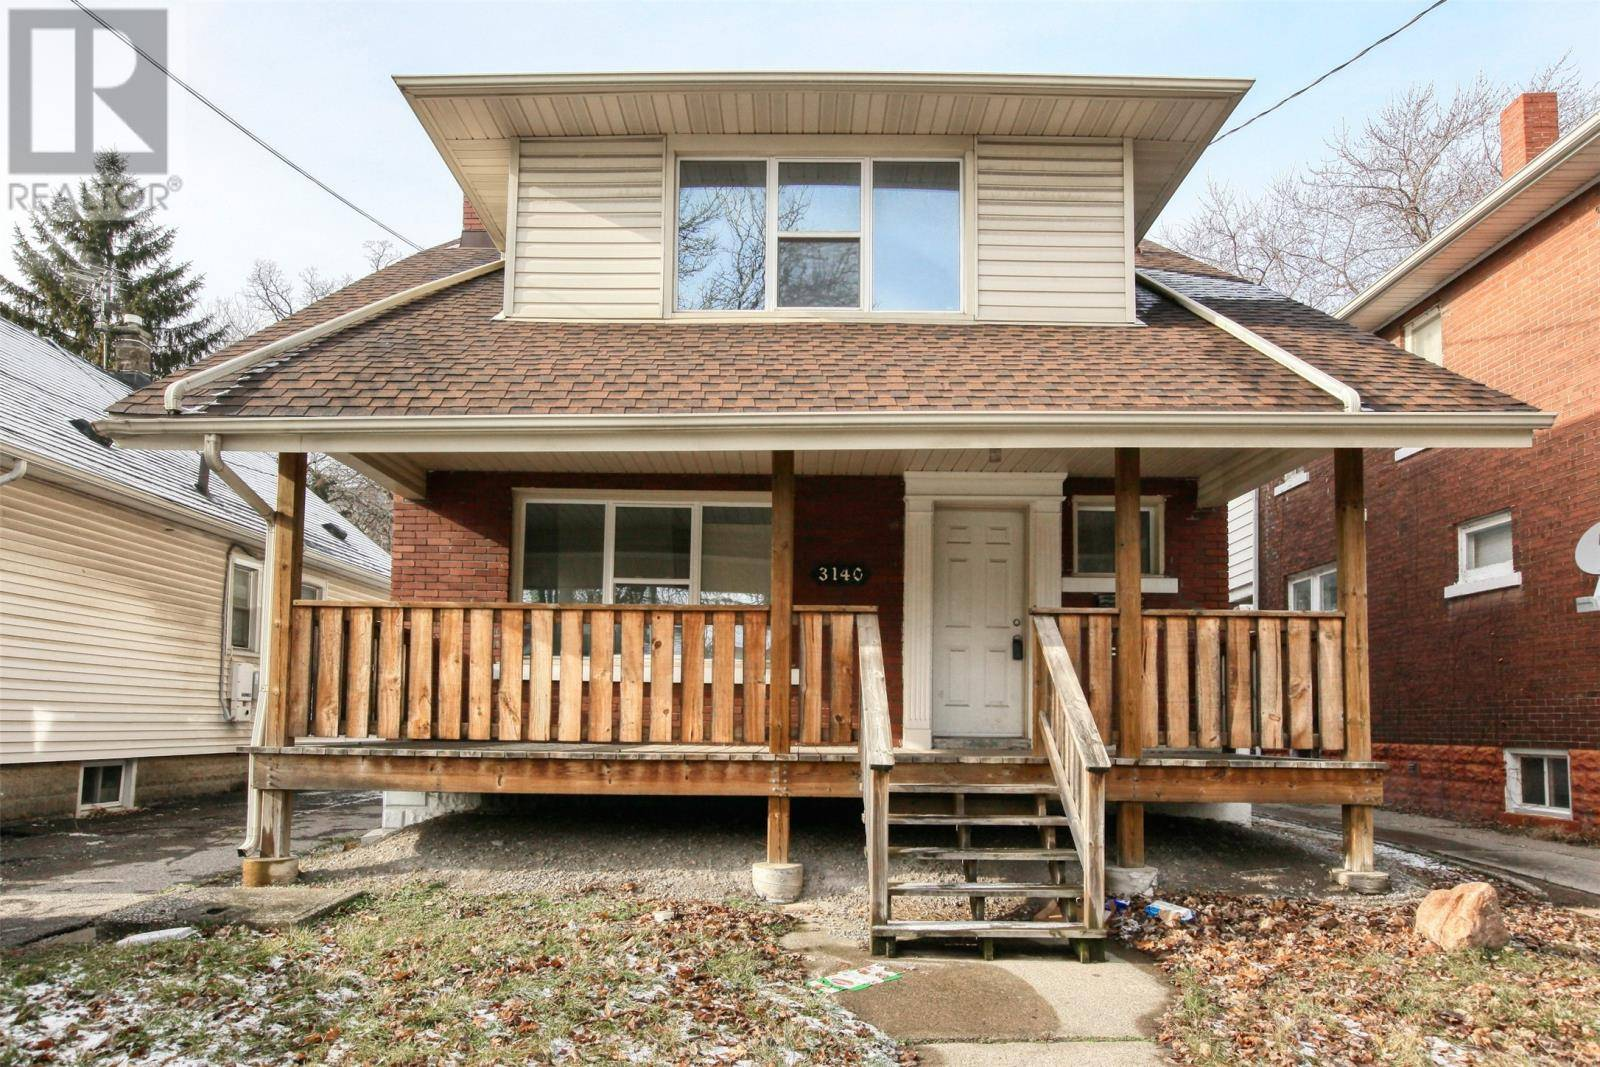 House for sale at 3140 Wyandotte St West Windsor Ontario - MLS: 20000447